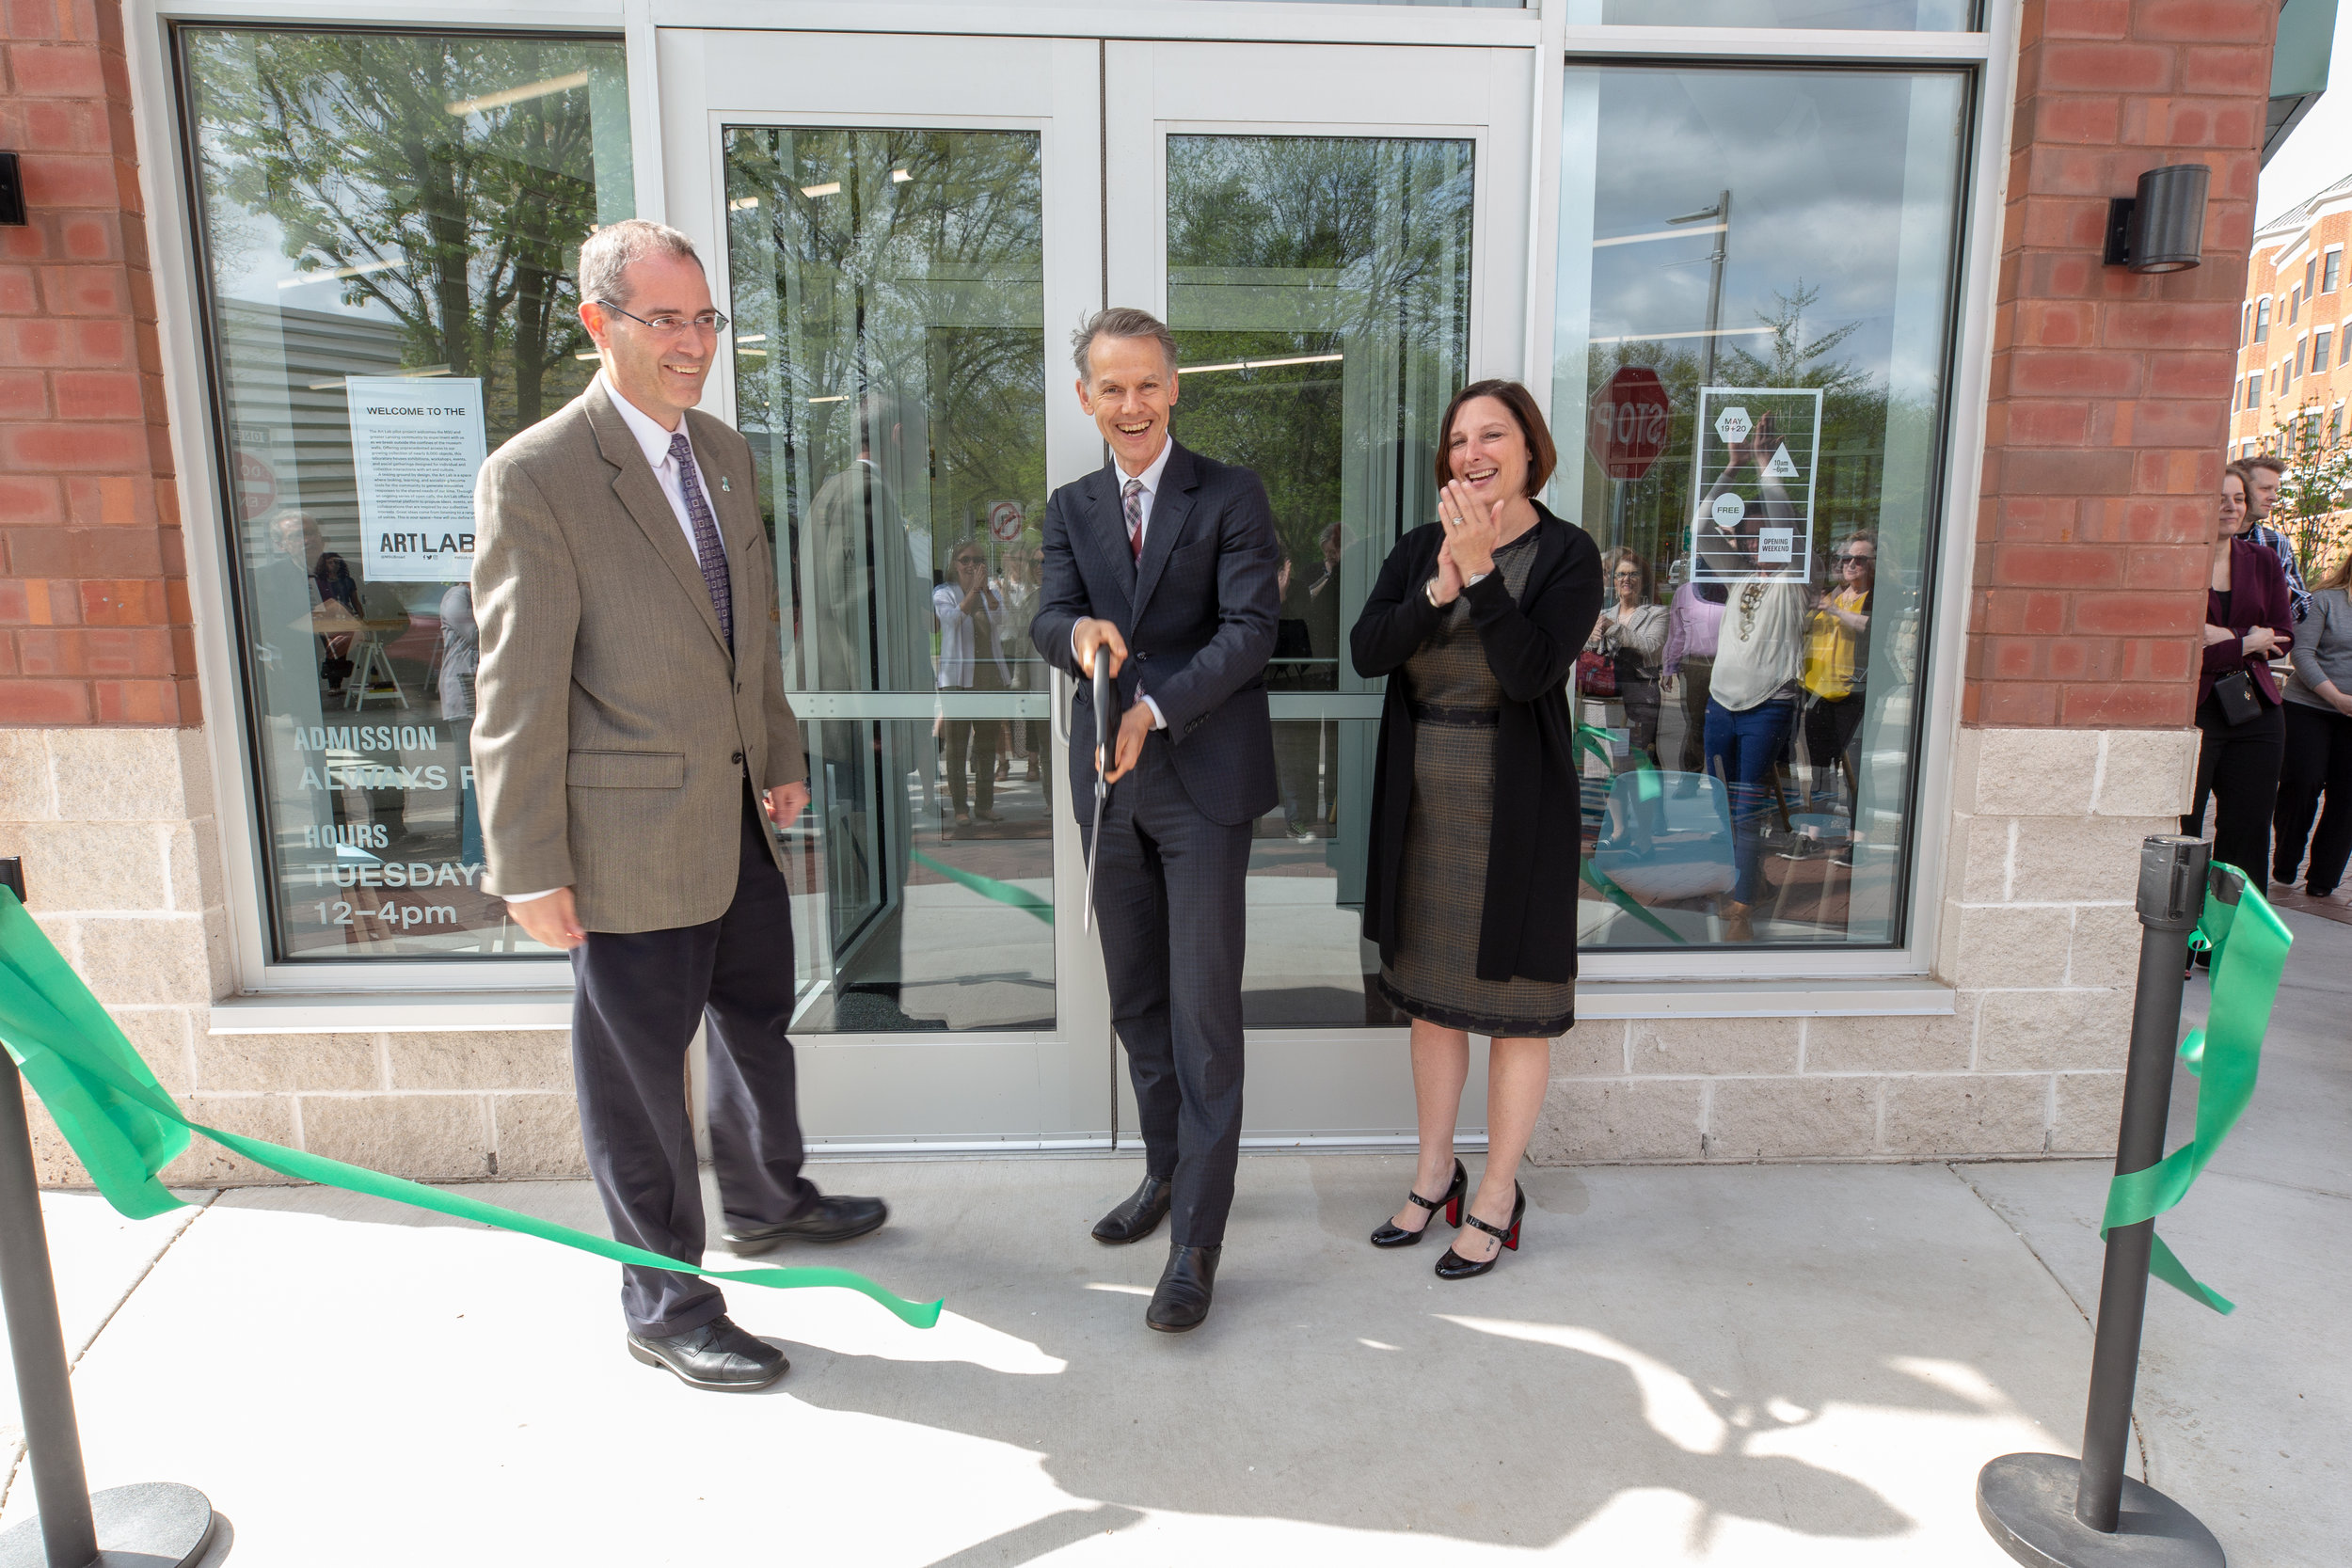 Art Lab opening with Dean Christopher Long, Marc-Olivier Whaler Director of the MSU Broad, President and CEO MSUFCU April Clobes